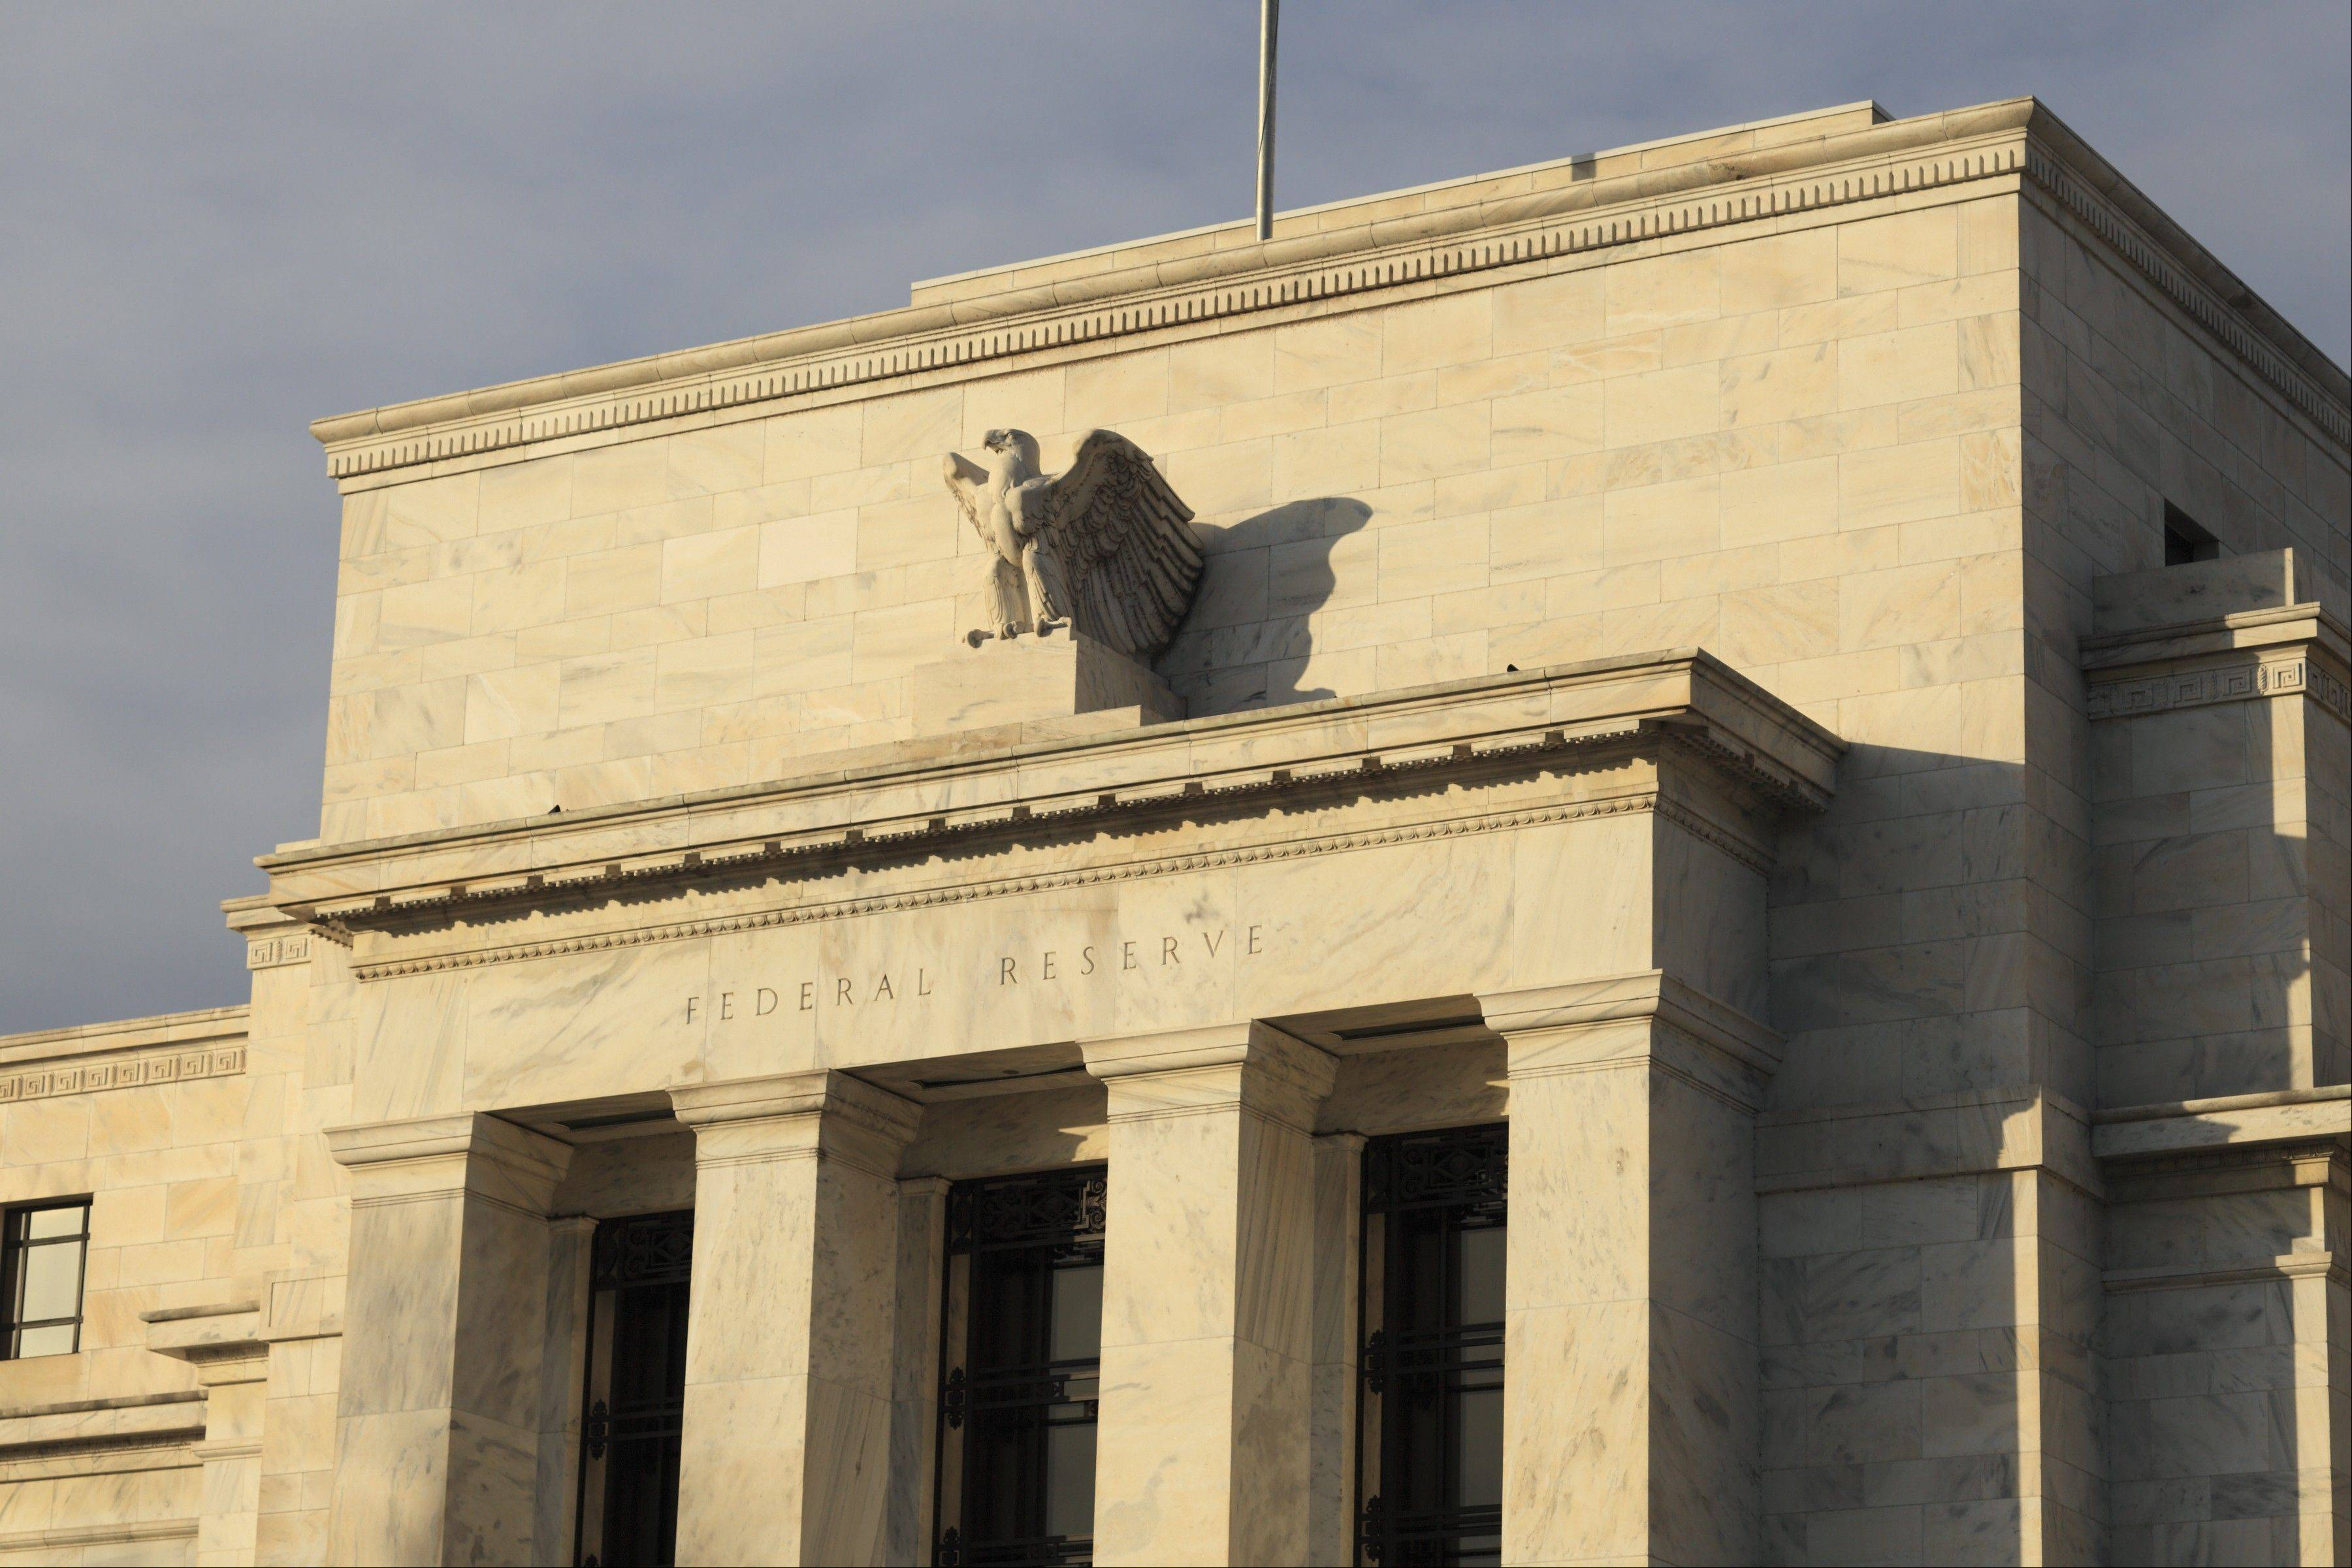 The Federal Reserve appears to be moving toward announcing some new step to try to energize the troubled U.S. economy. The question is whether it will do so after its policy meeting this week.Probably not, many economists say.